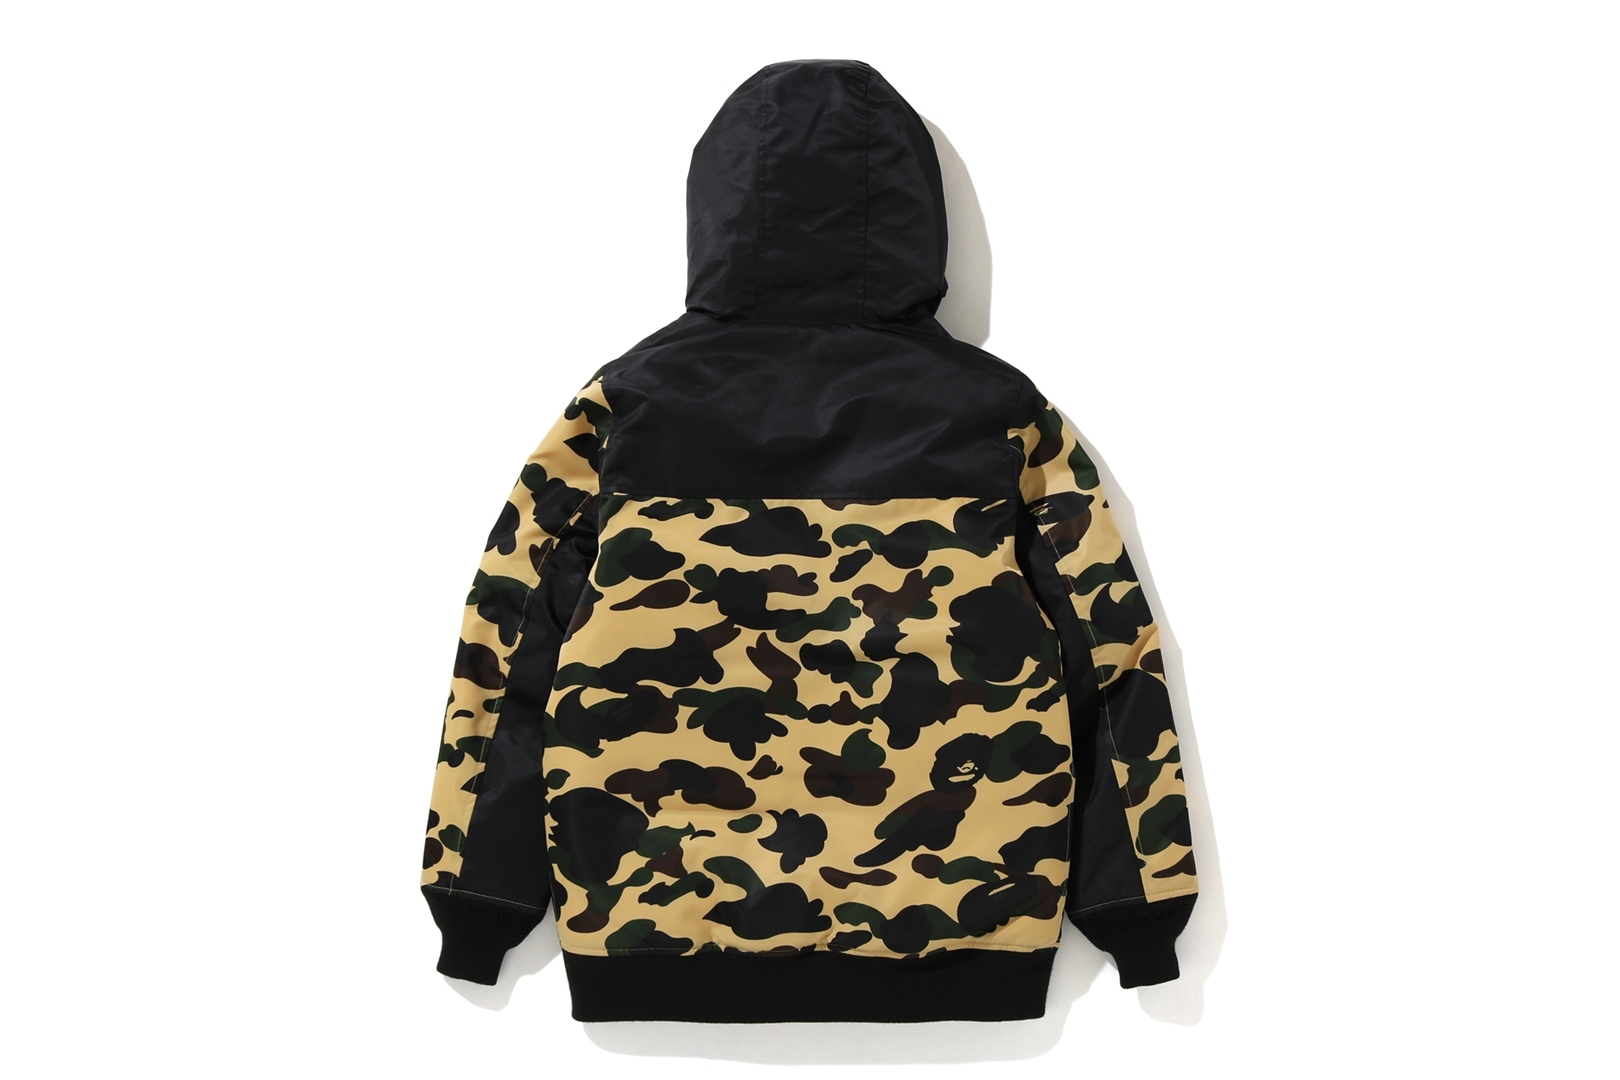 1ST CAMO OVERSIZED HOODIE DOWN JACKET_a0174495_13242332.jpg